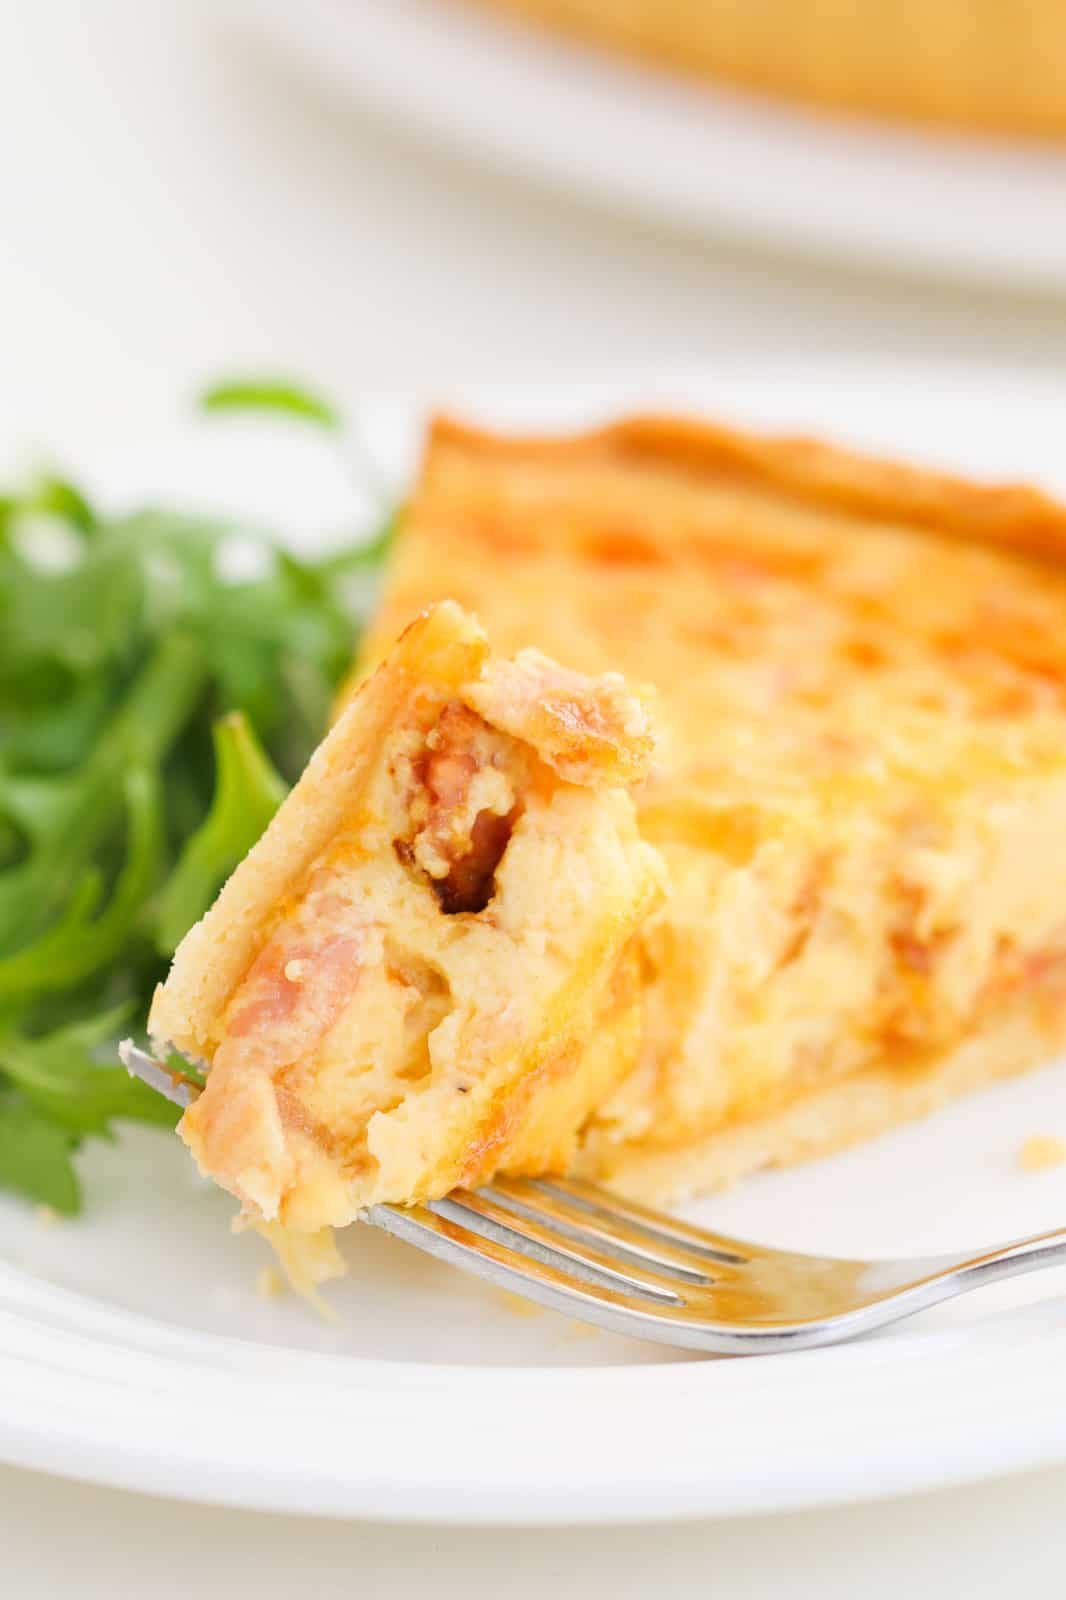 A forkful of egg, bacon and cheese quiche served with rocket leaves